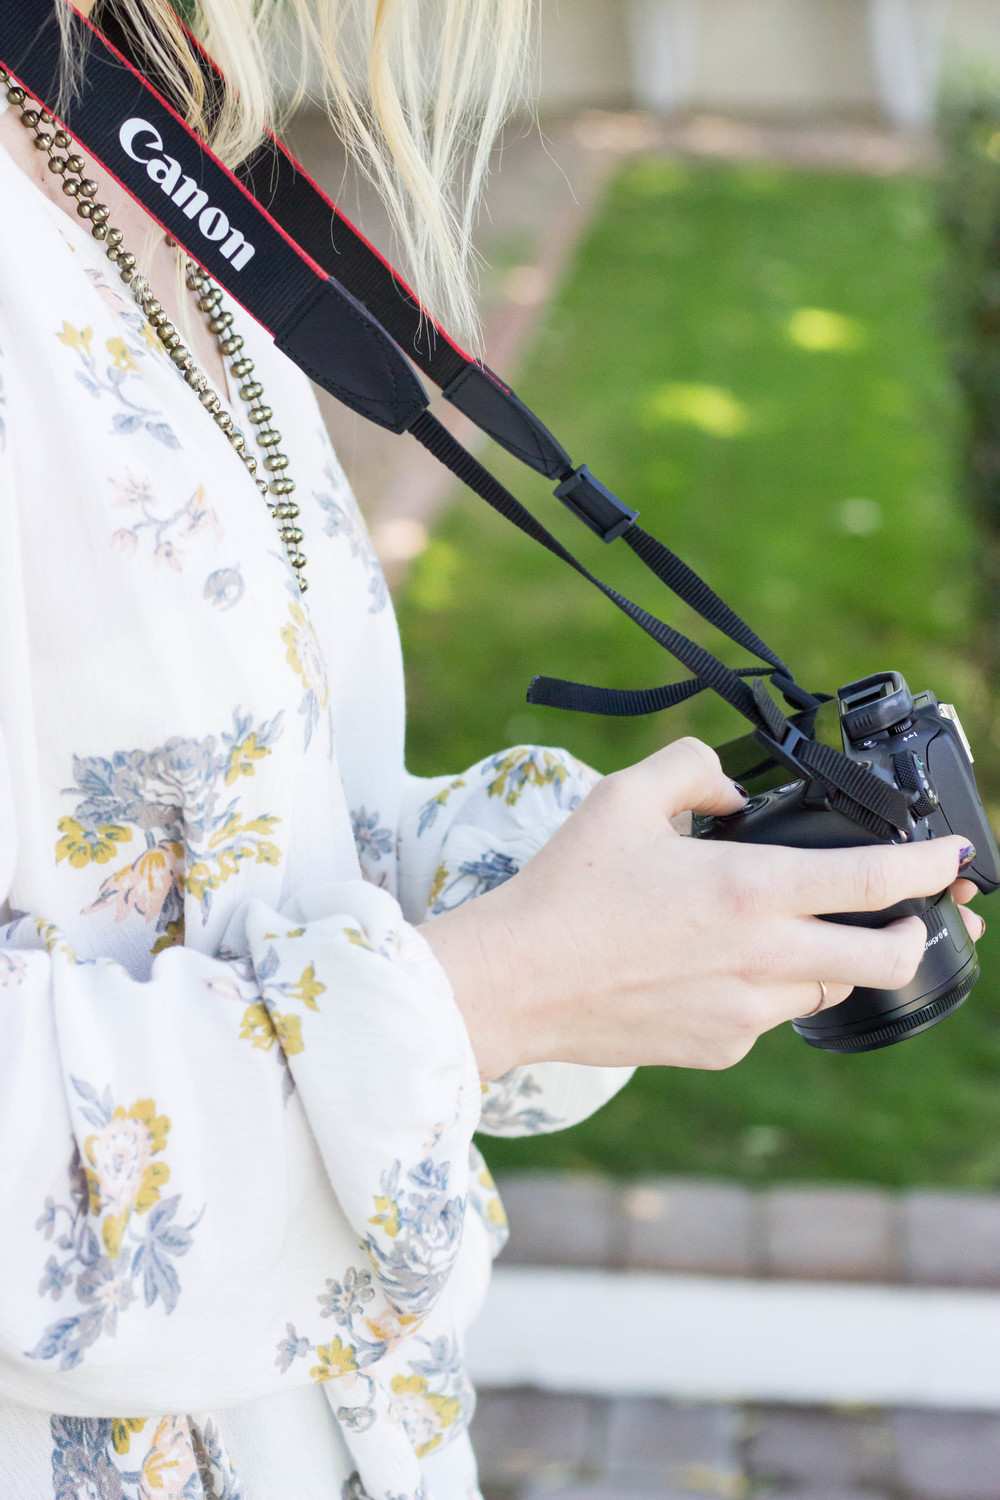 Woman with a DSLR Camera